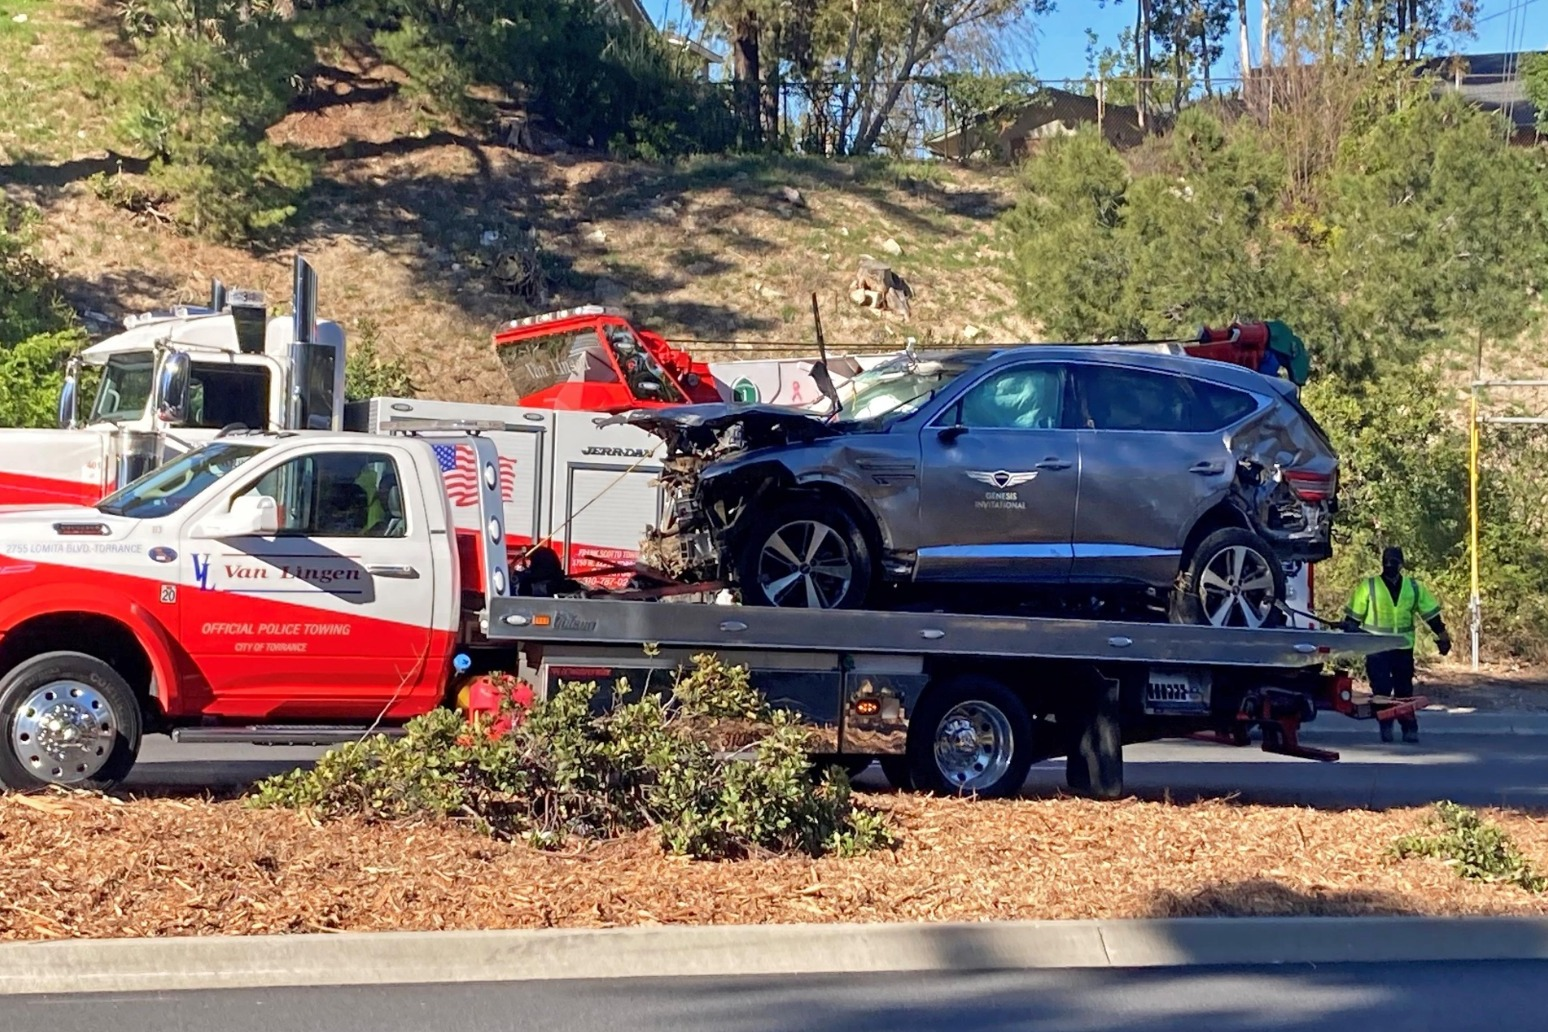 Tiger Woods facing hard recovery after suffering serious injuries in car crash